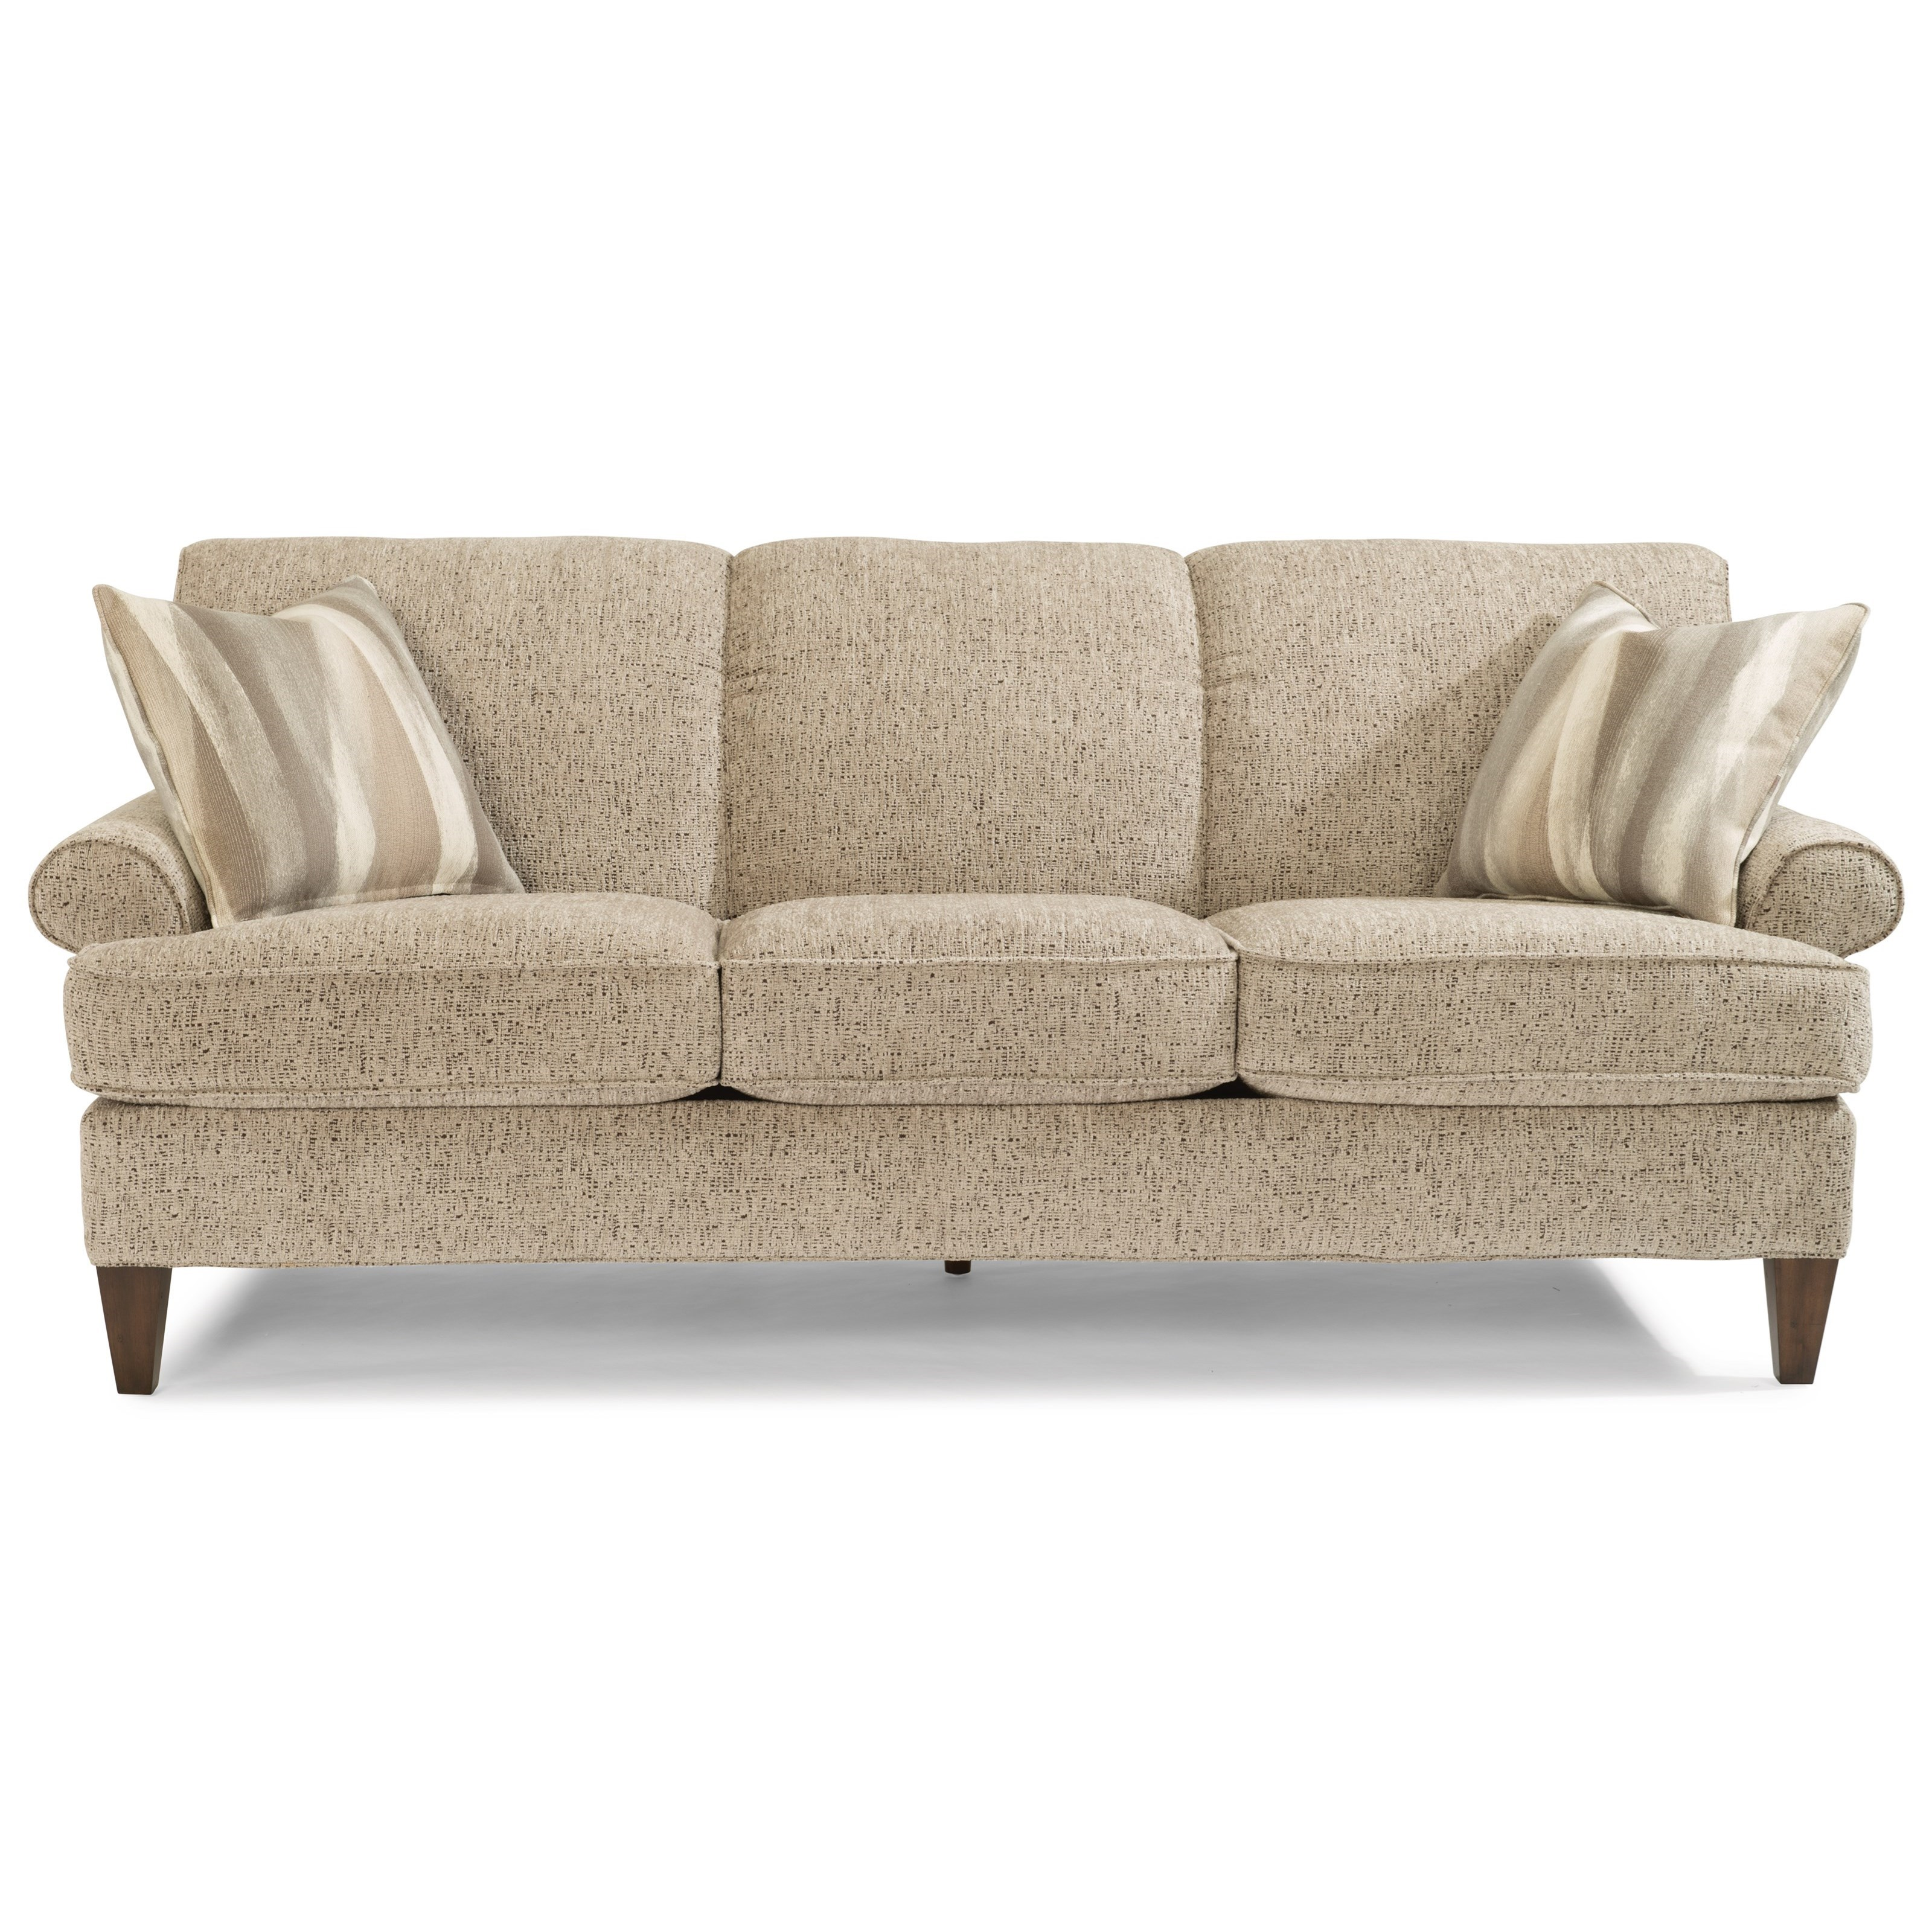 Venture Sofa by Flexsteel at Dunk & Bright Furniture